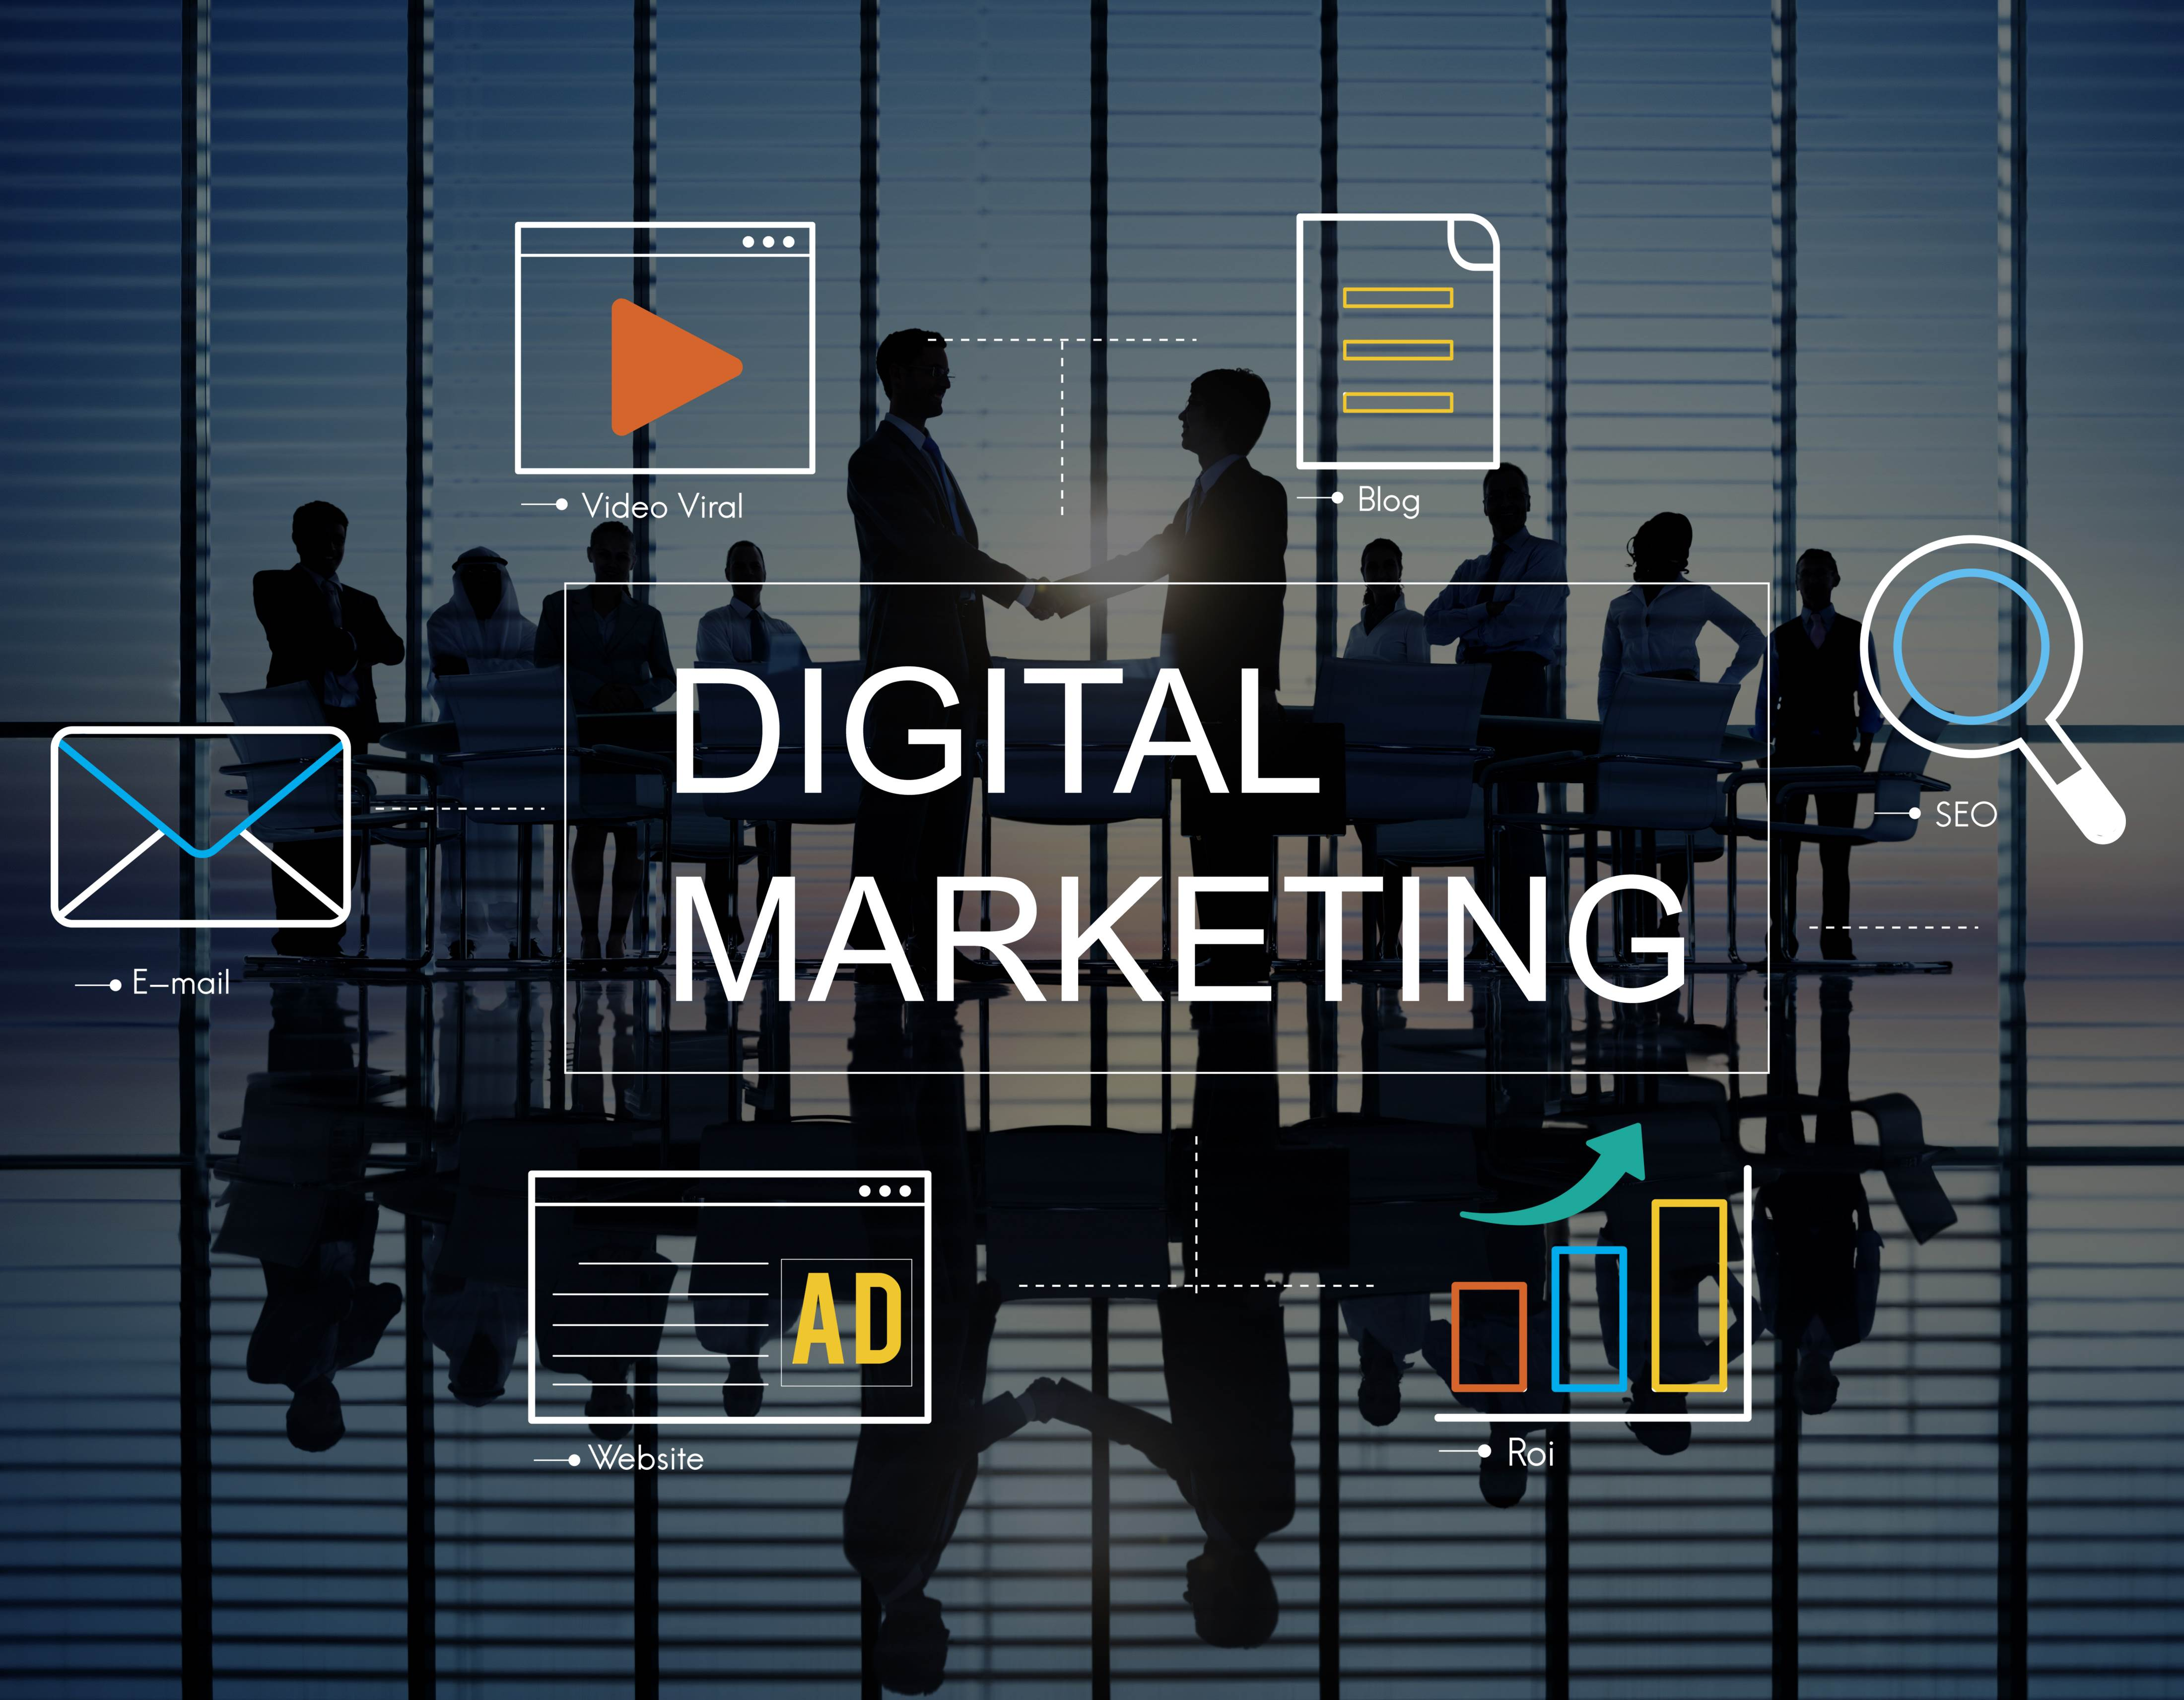 Top 5 Digital Marketing Trends 2021 for Small Businesses